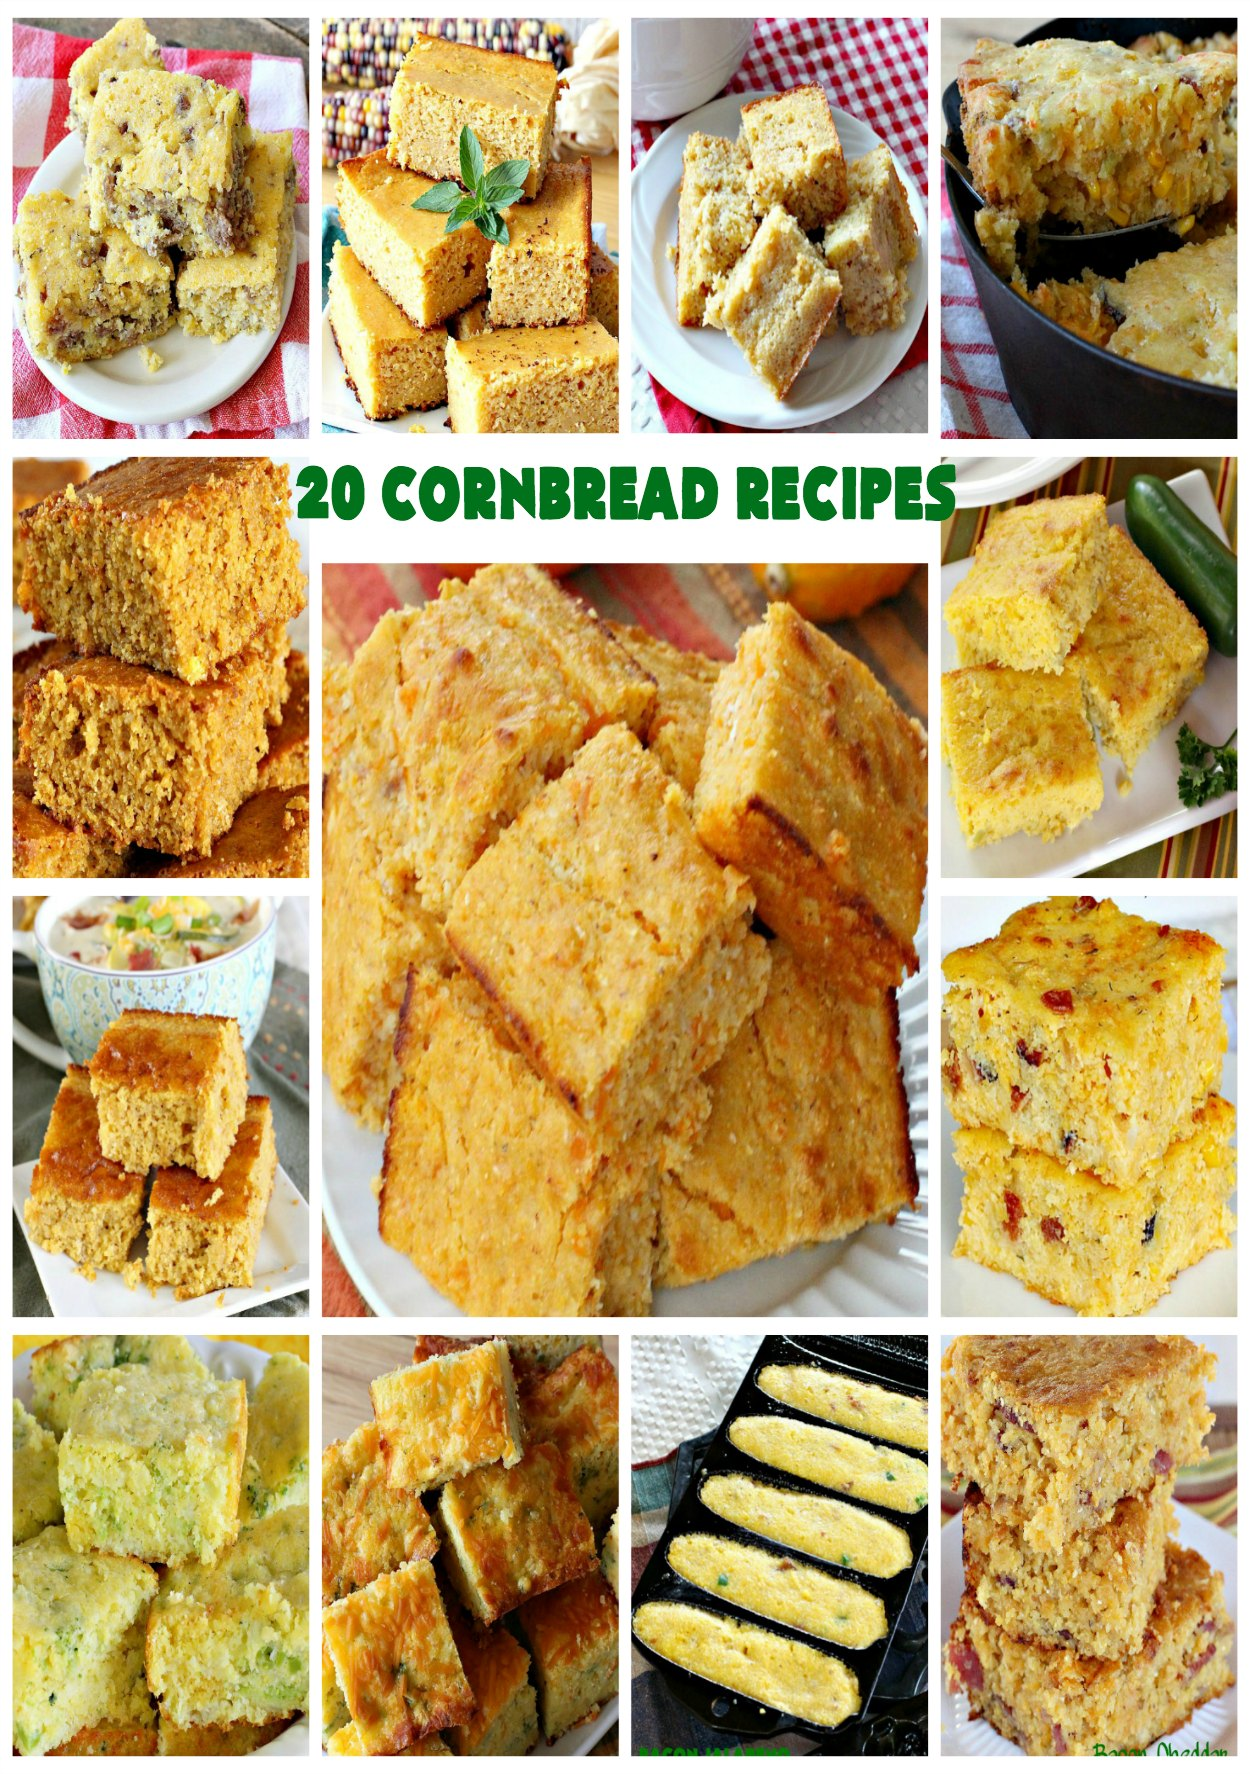 Cornbread Recipes | Can't Stay Out of the Kitchen | 20 of our favorite #cornbread #recipes including several #GlutenFree versions.